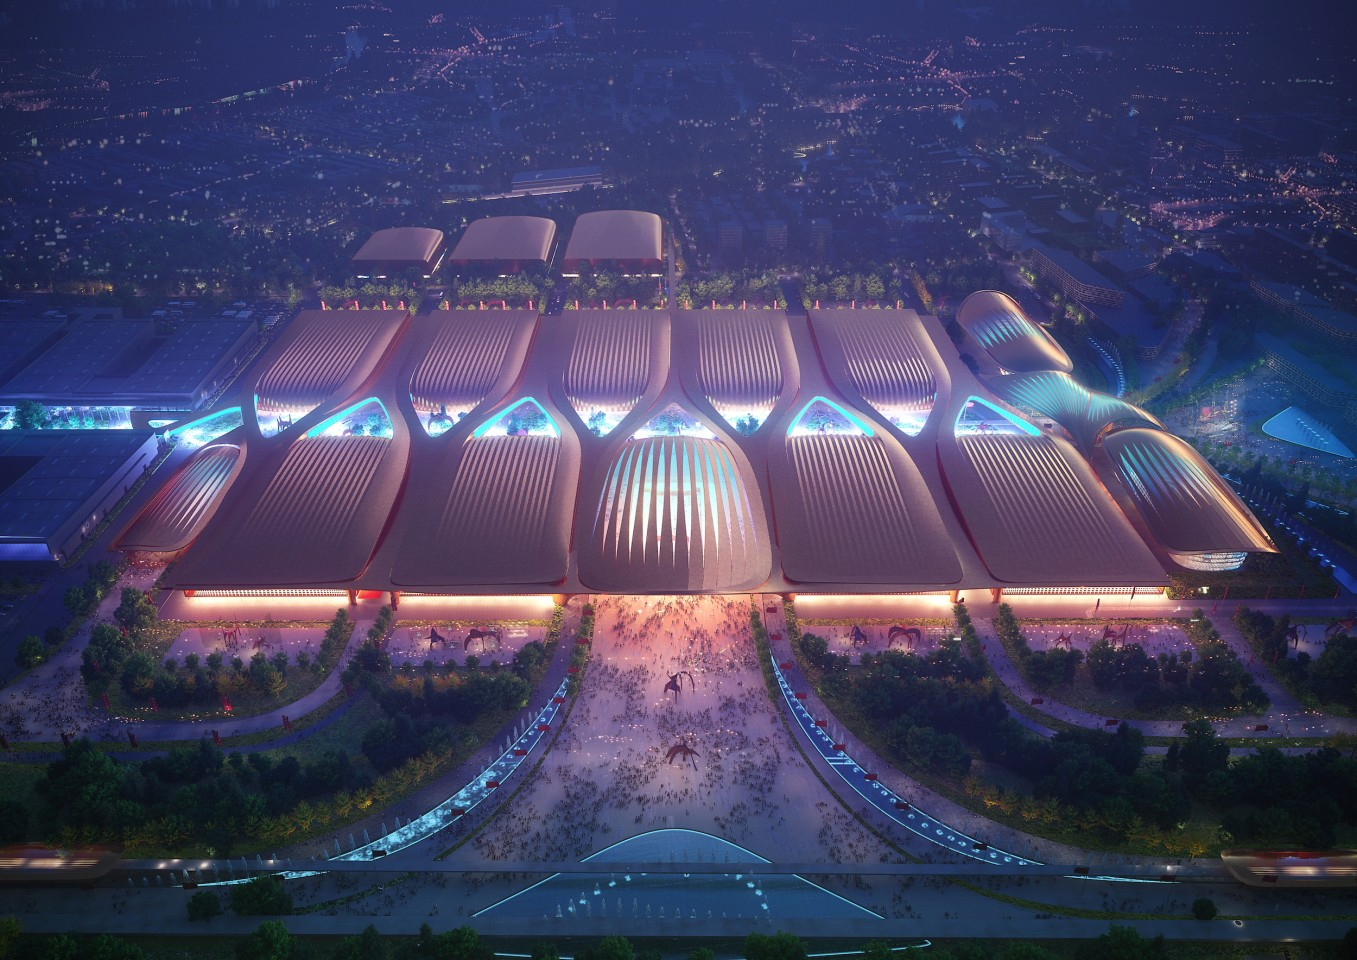 Phase II of the International Exhibition Centre in Beijing will measure 438,500 sq m (roughly 4.7 million sq ft)